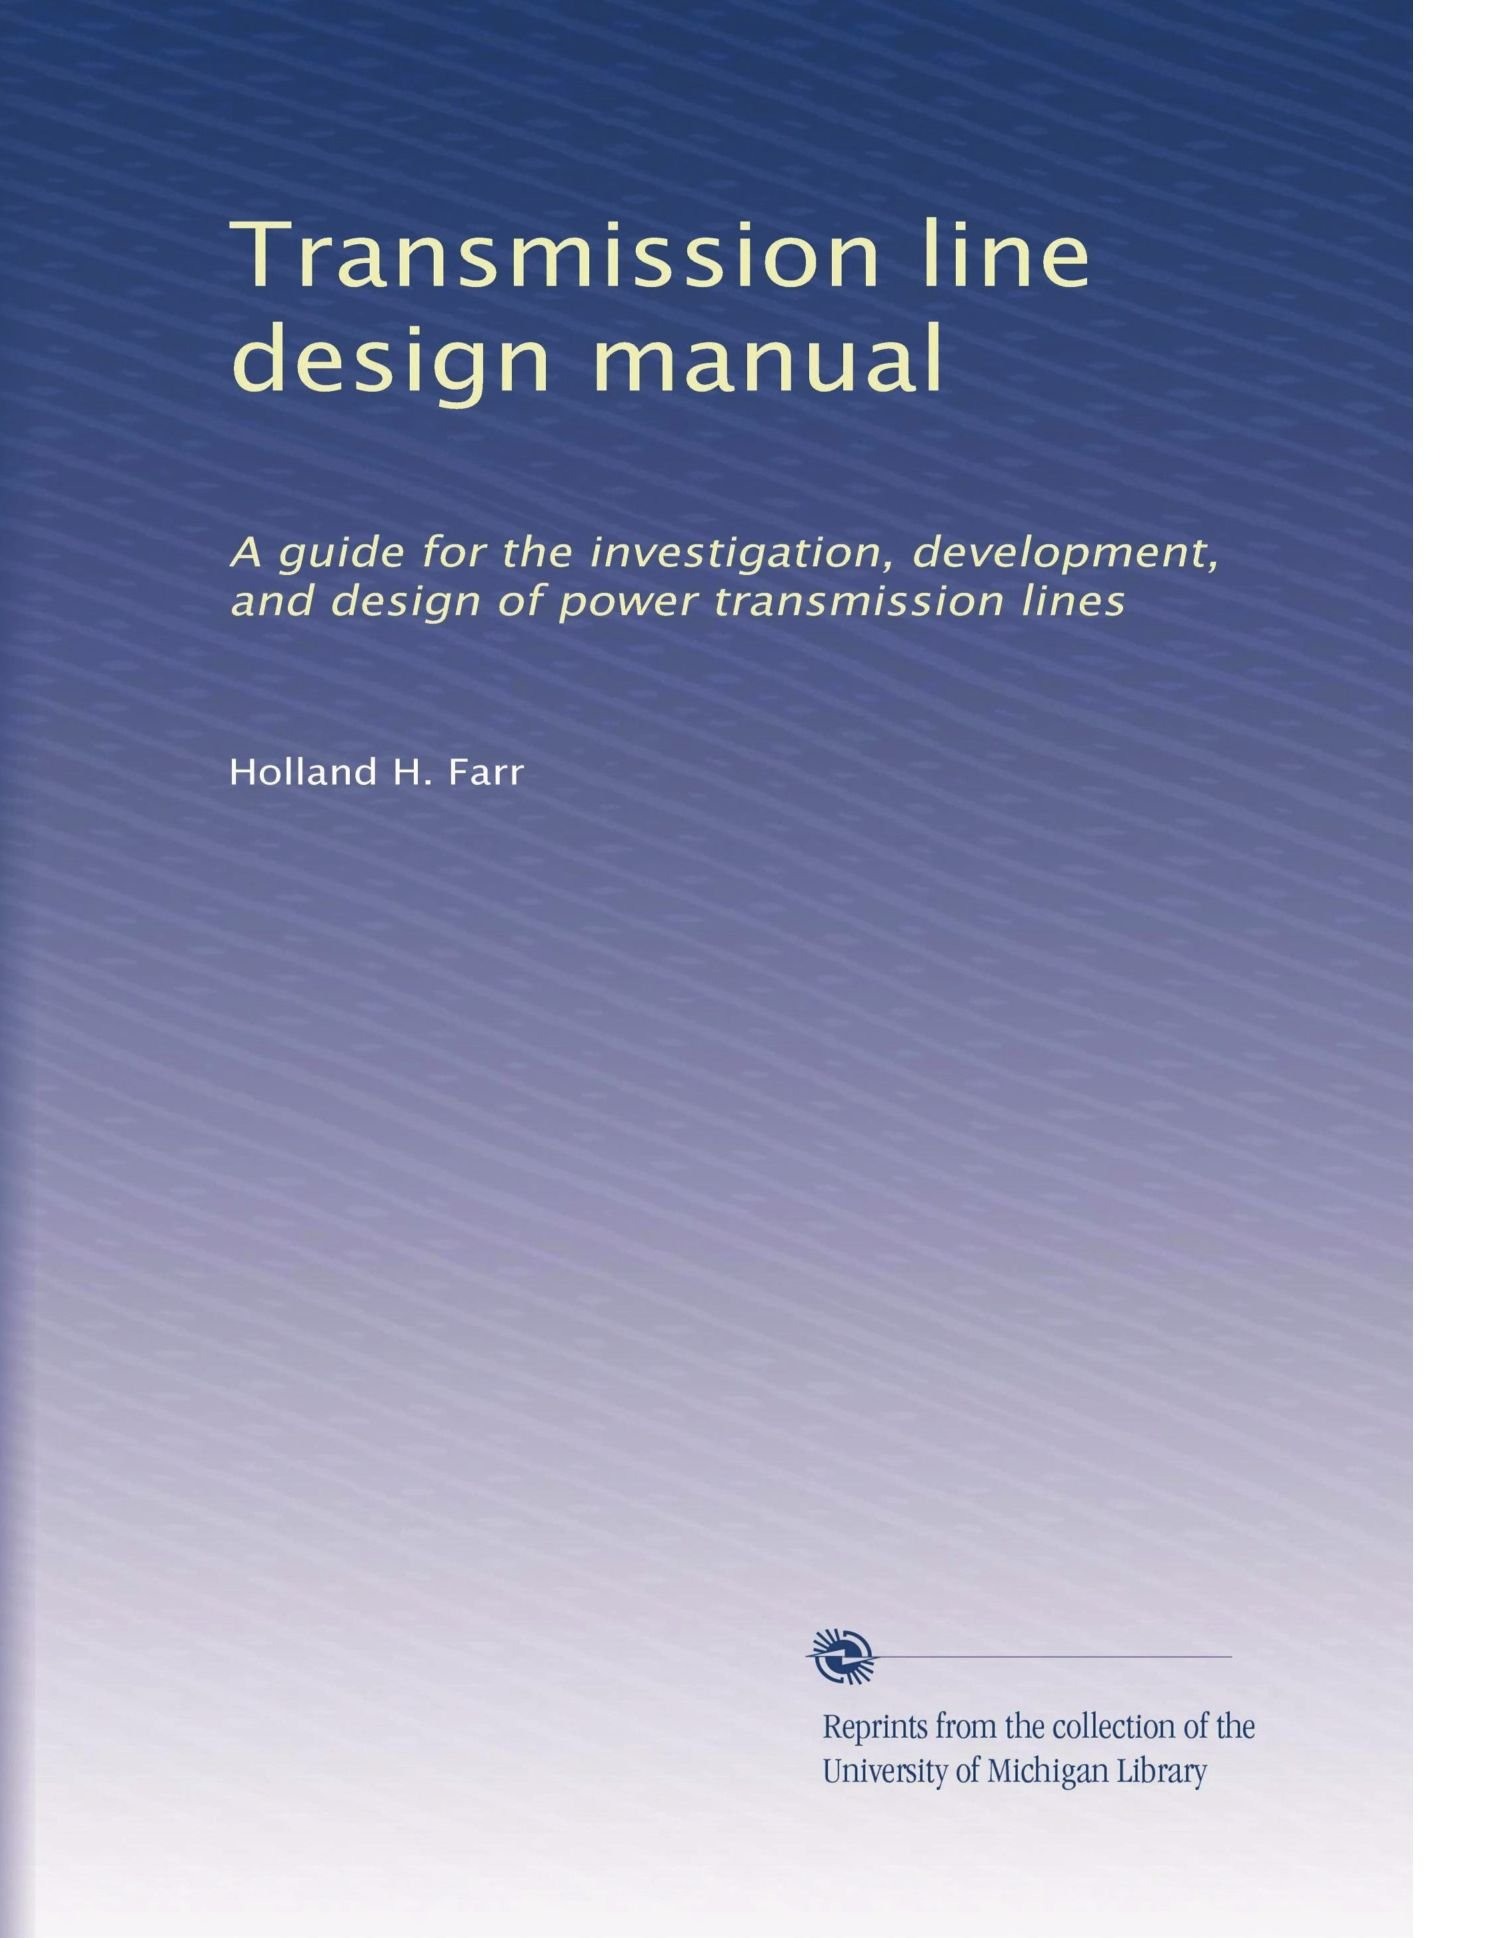 transmission line design manual a guide for the investigation rh amazon com electrical power transmission line design and construction manual Manual Transmission Problems